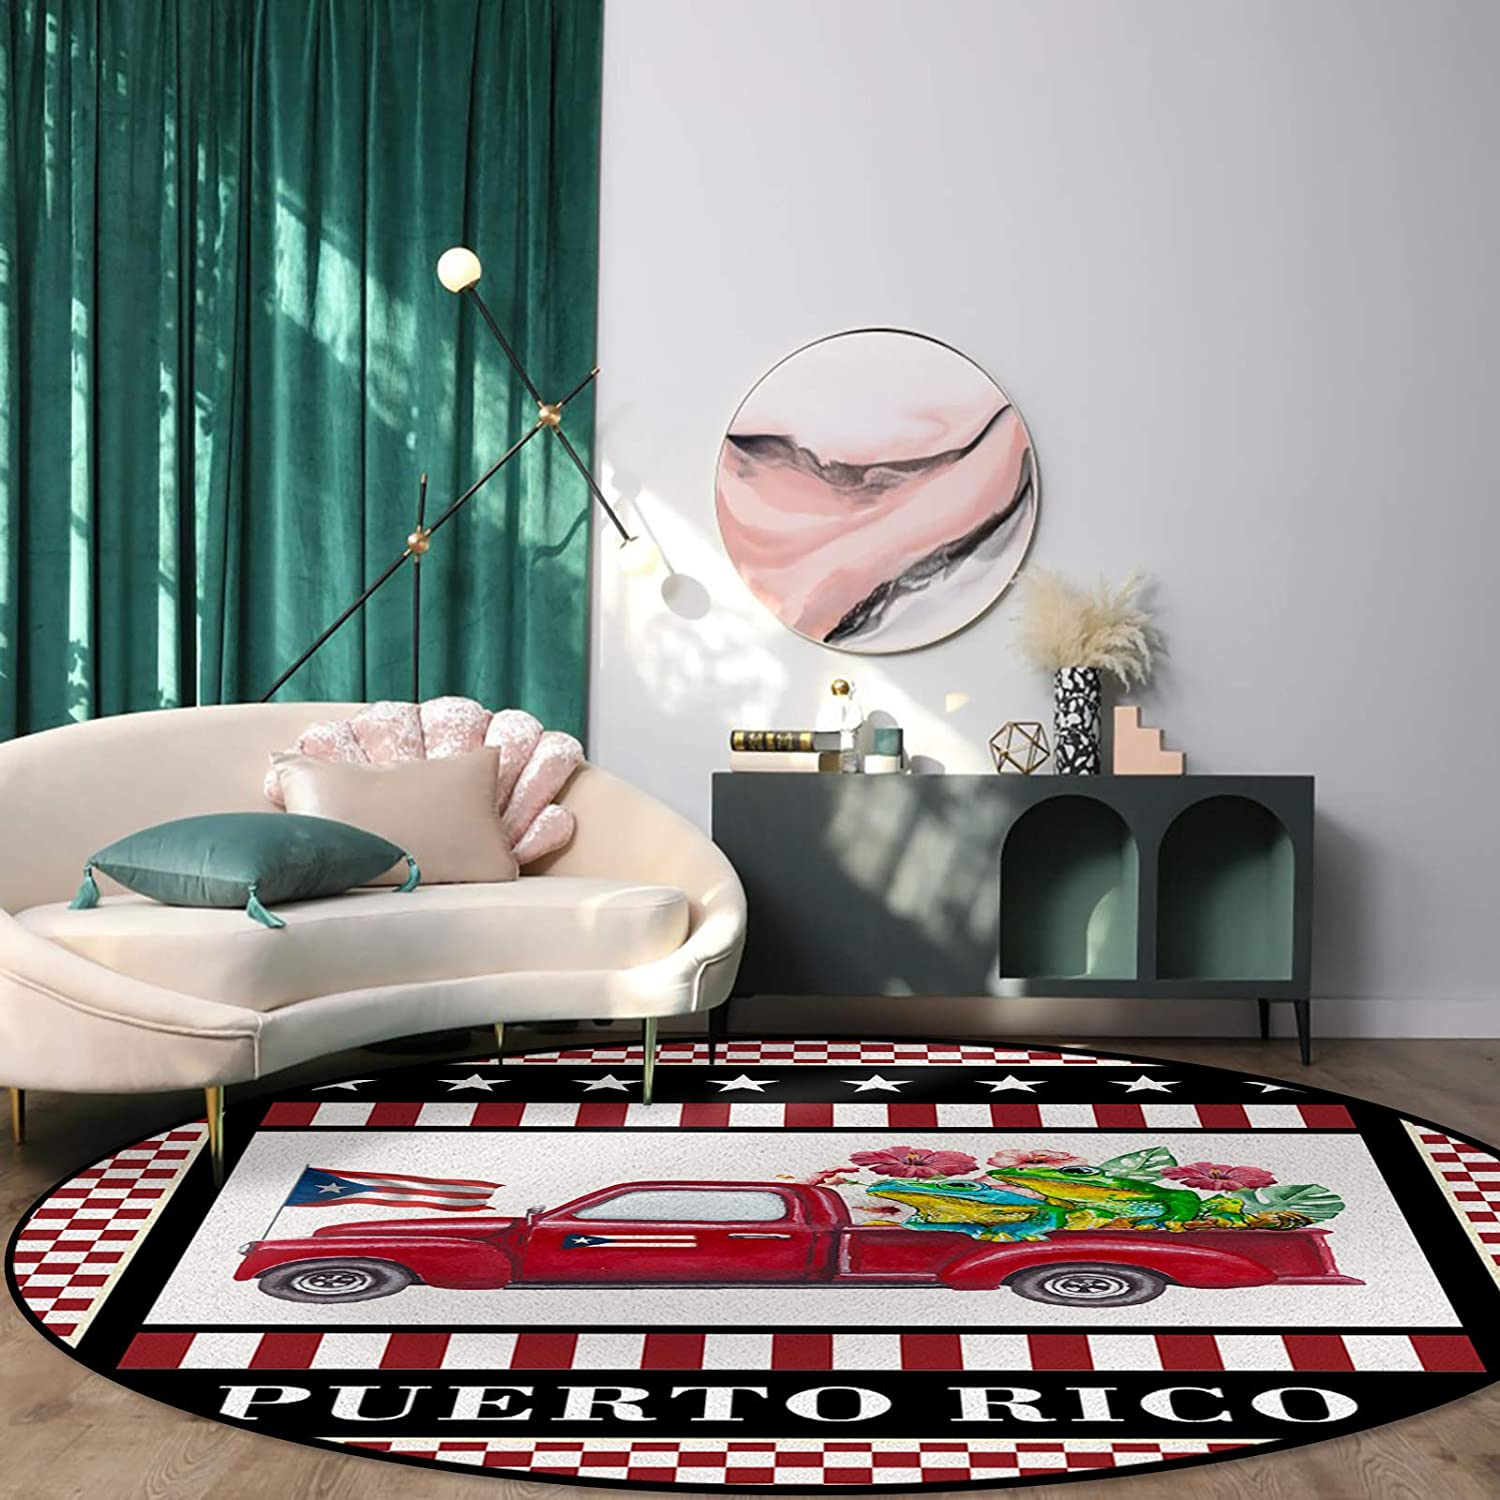 Round Rug Superlatite for Dining Room Bedroom Truck Rico 2021new shipping free Fro Puerto Red with